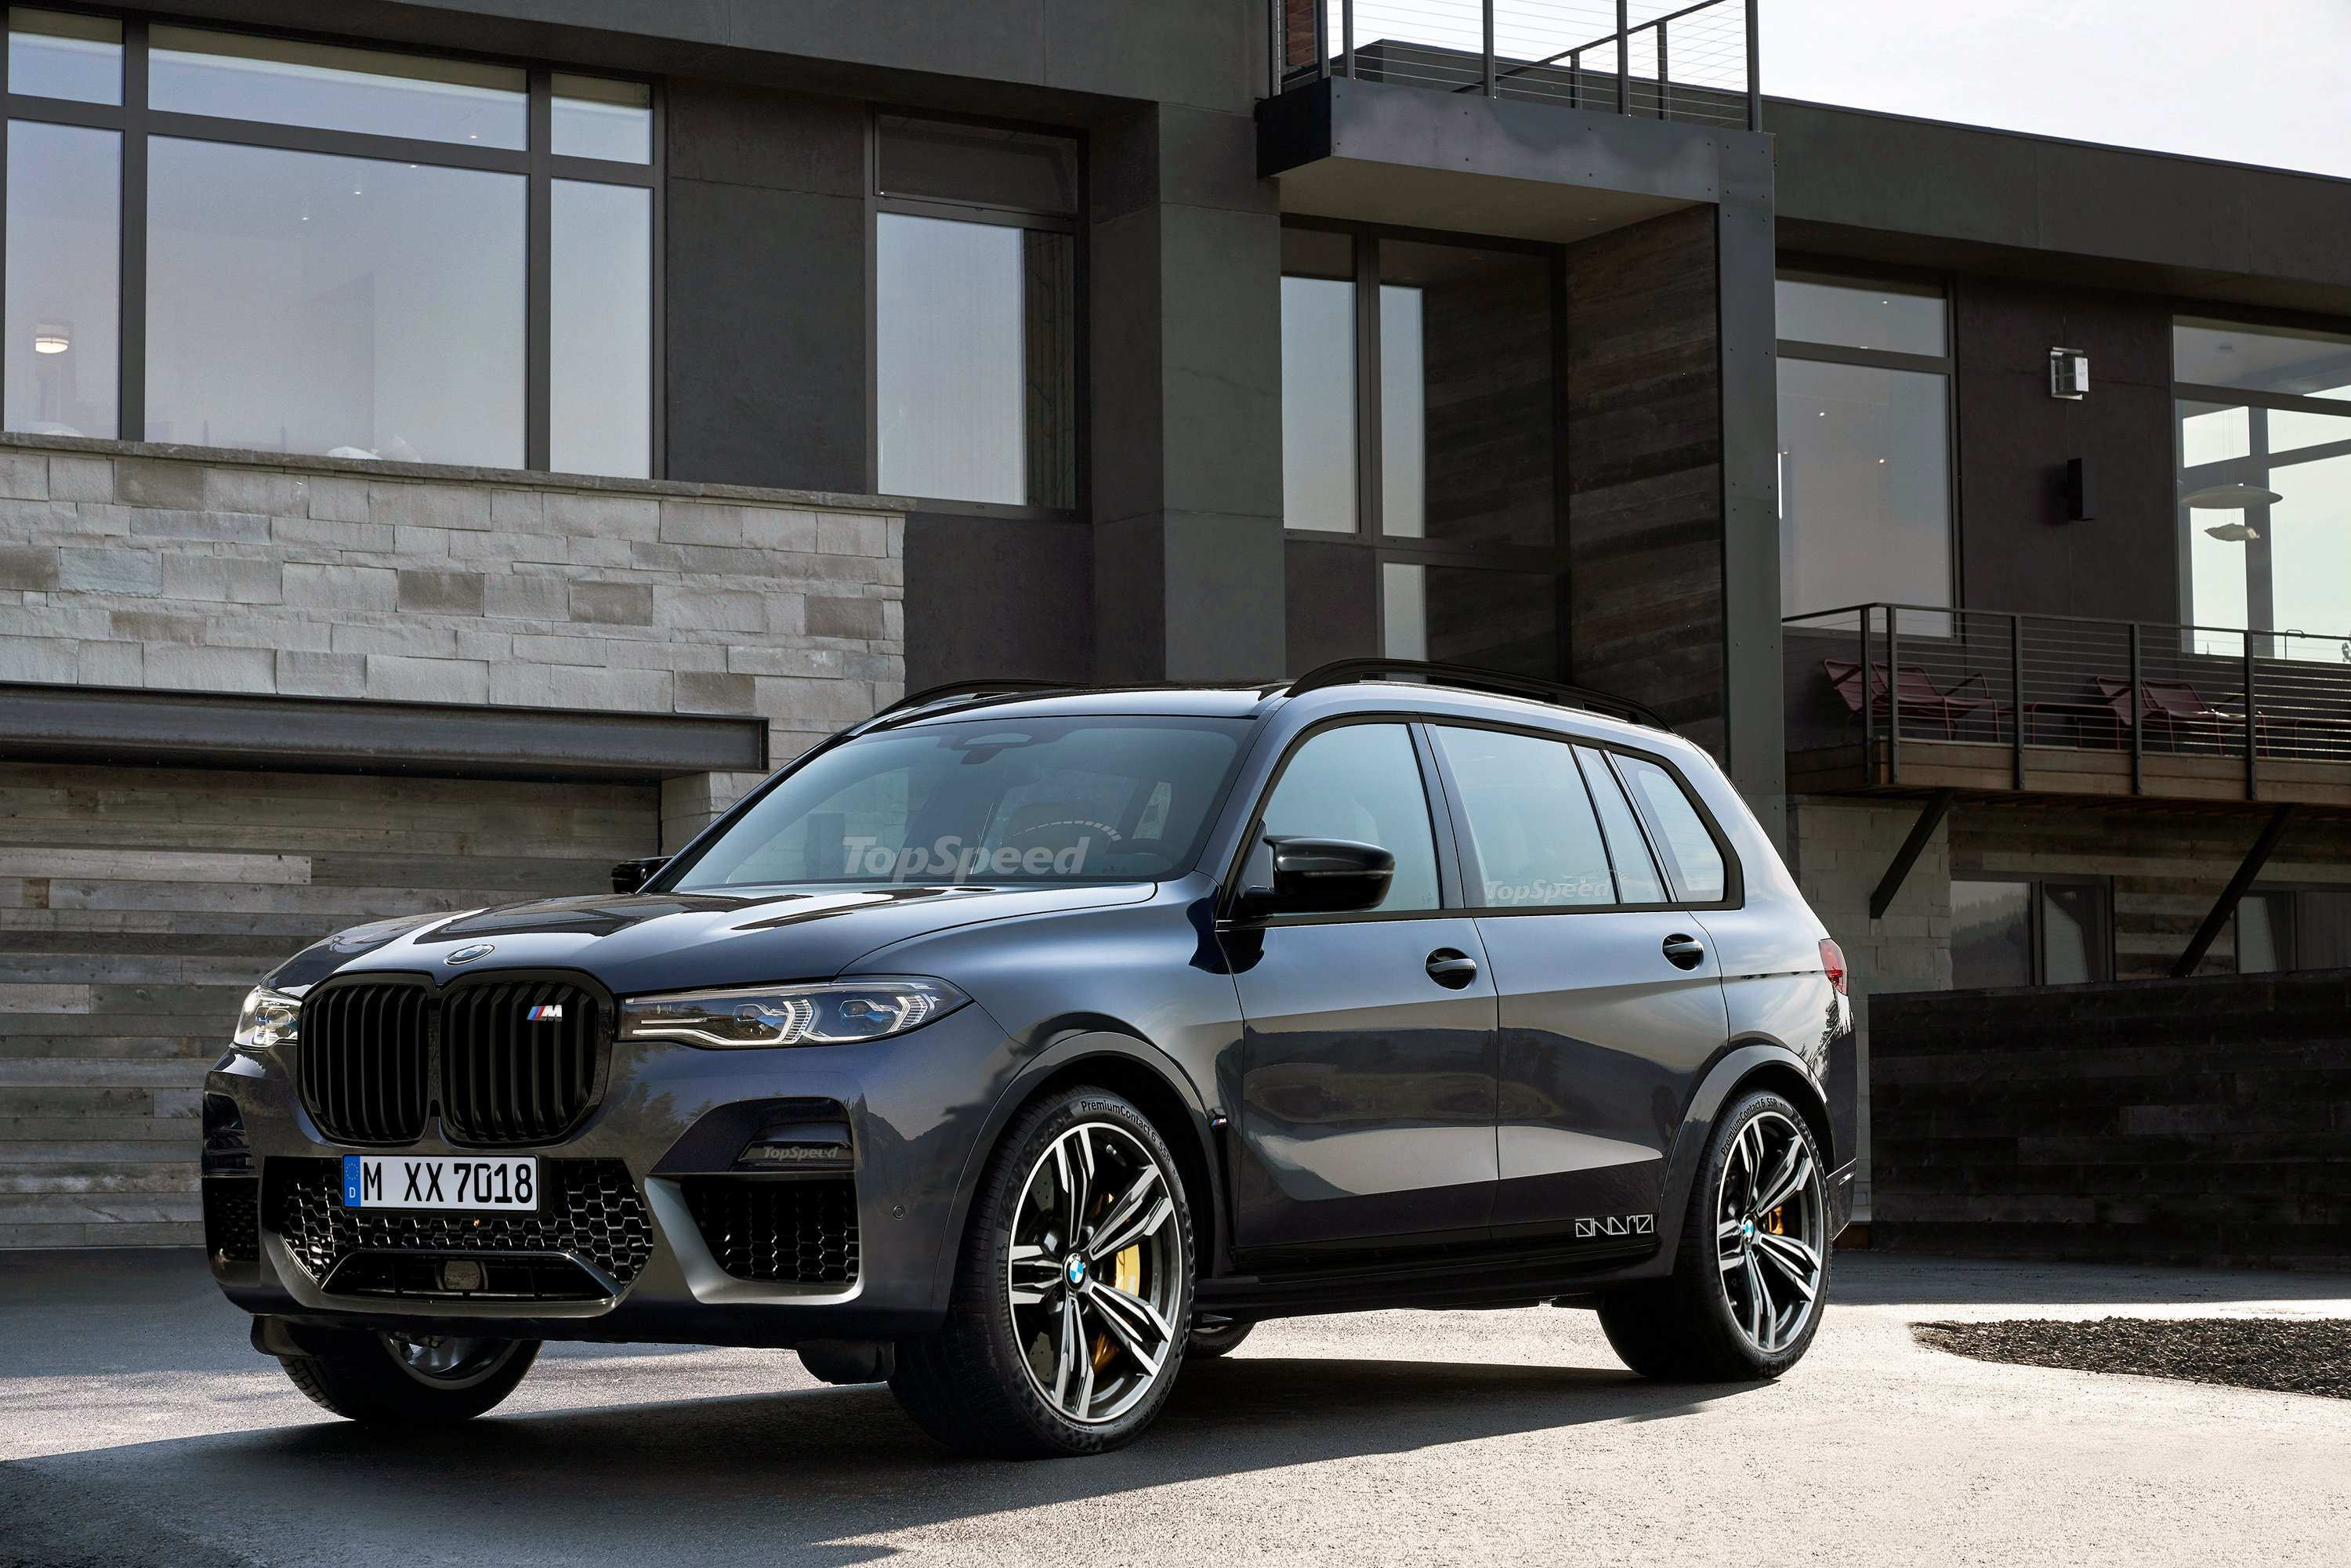 66 All New 2020 BMW Pro Tailgate Rumors for 2020 BMW Pro Tailgate